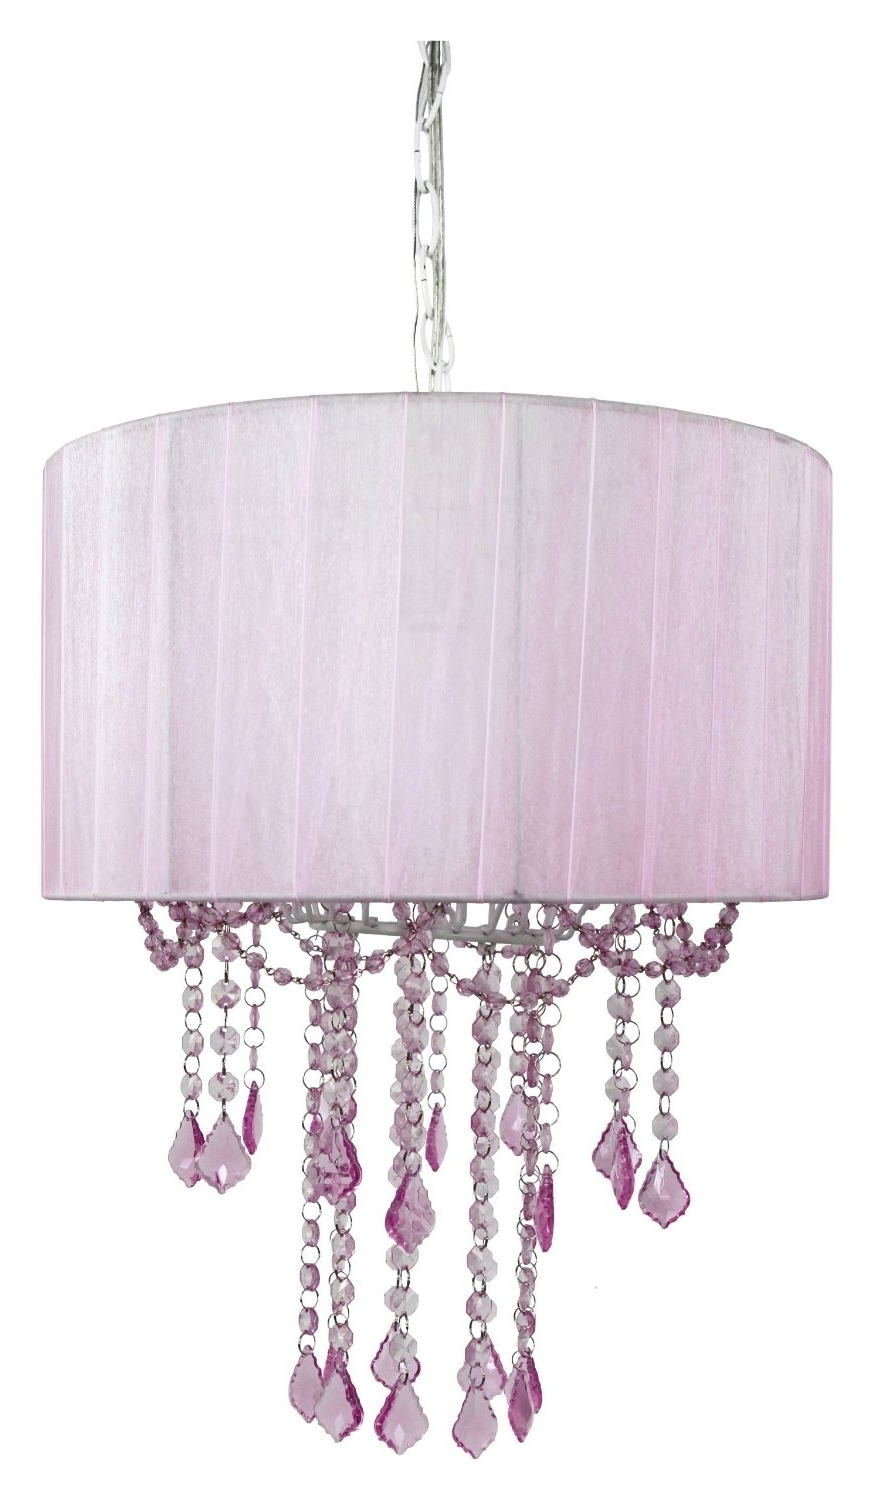 Widely Used Chandelier Light Shades With 24+ Pink Chandelier Light Designs, Decorating Ideas (View 15 of 15)